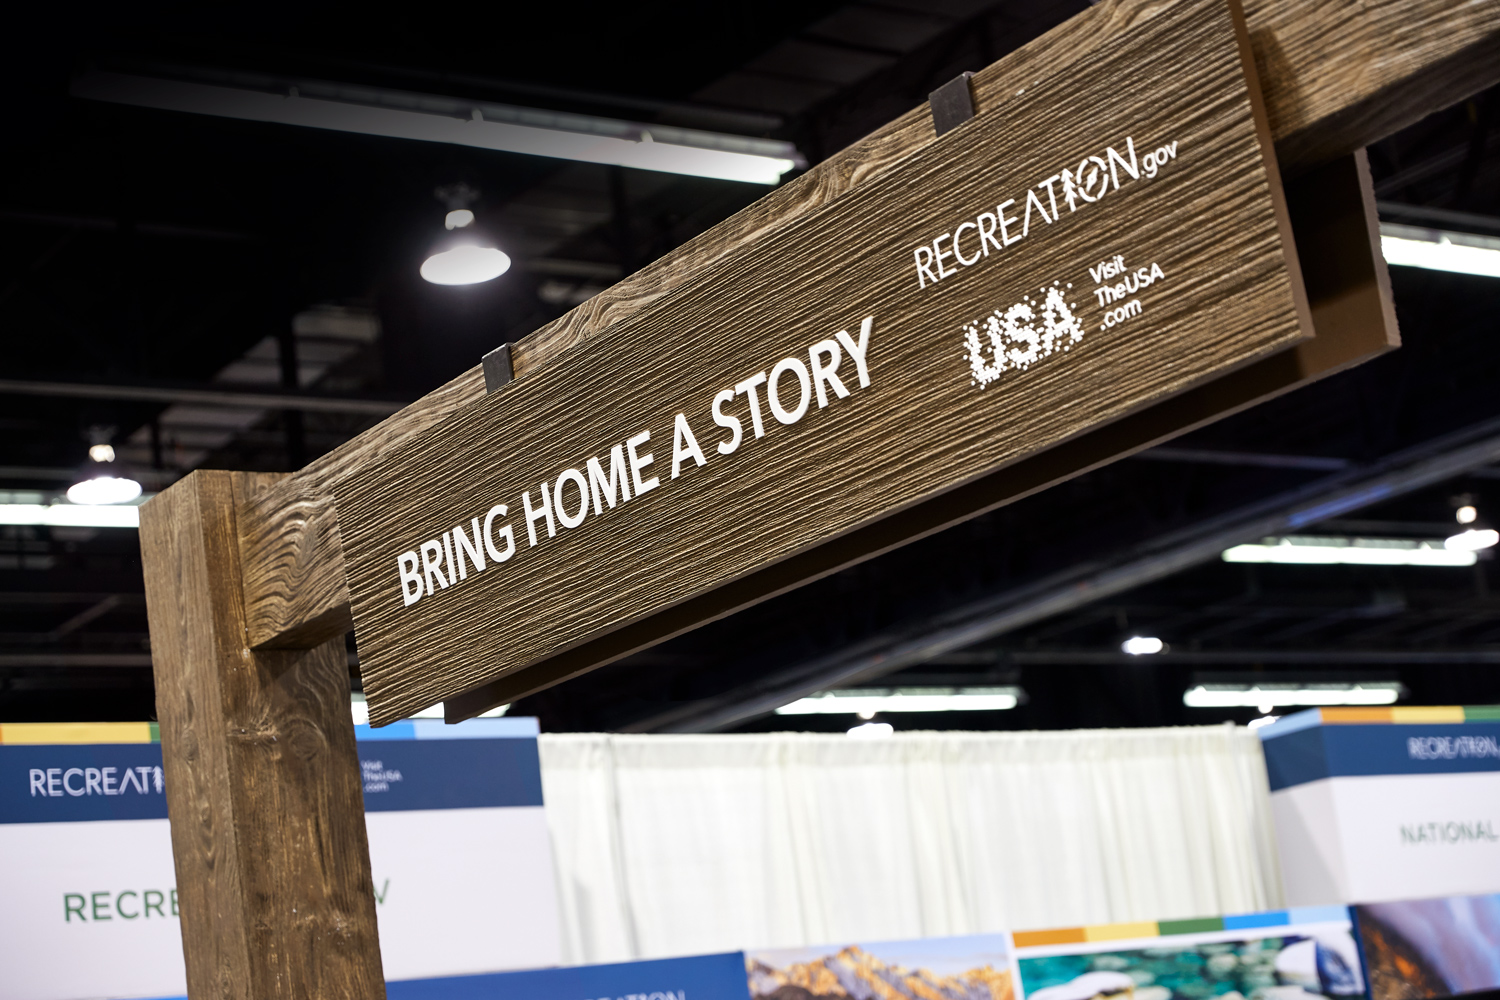 Image of Bring Home a Story sign